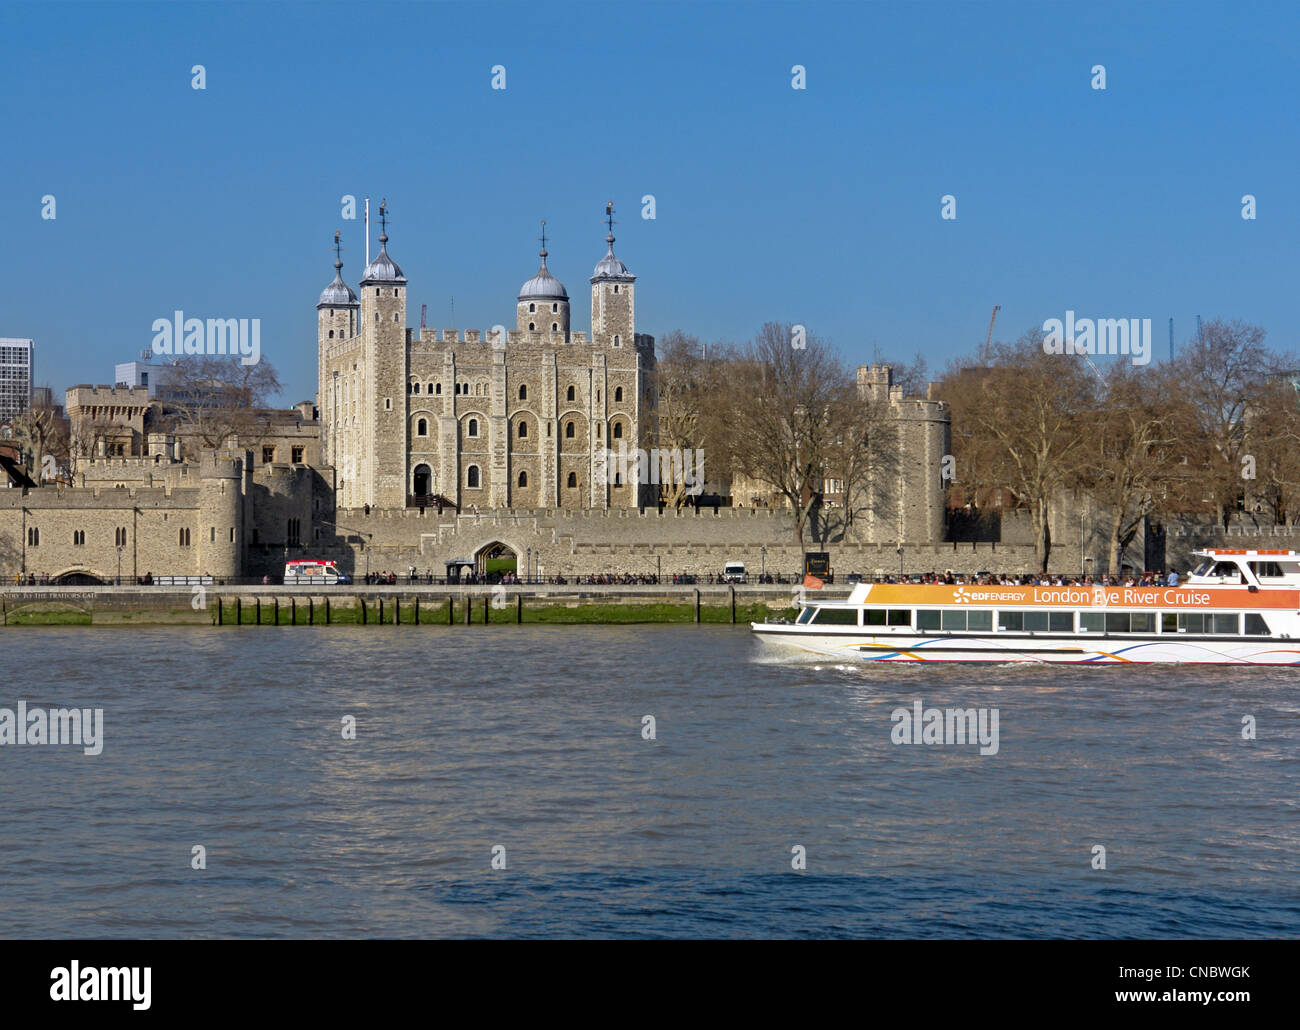 A Thames river cruise boat passing the Tower of London - Stock Image